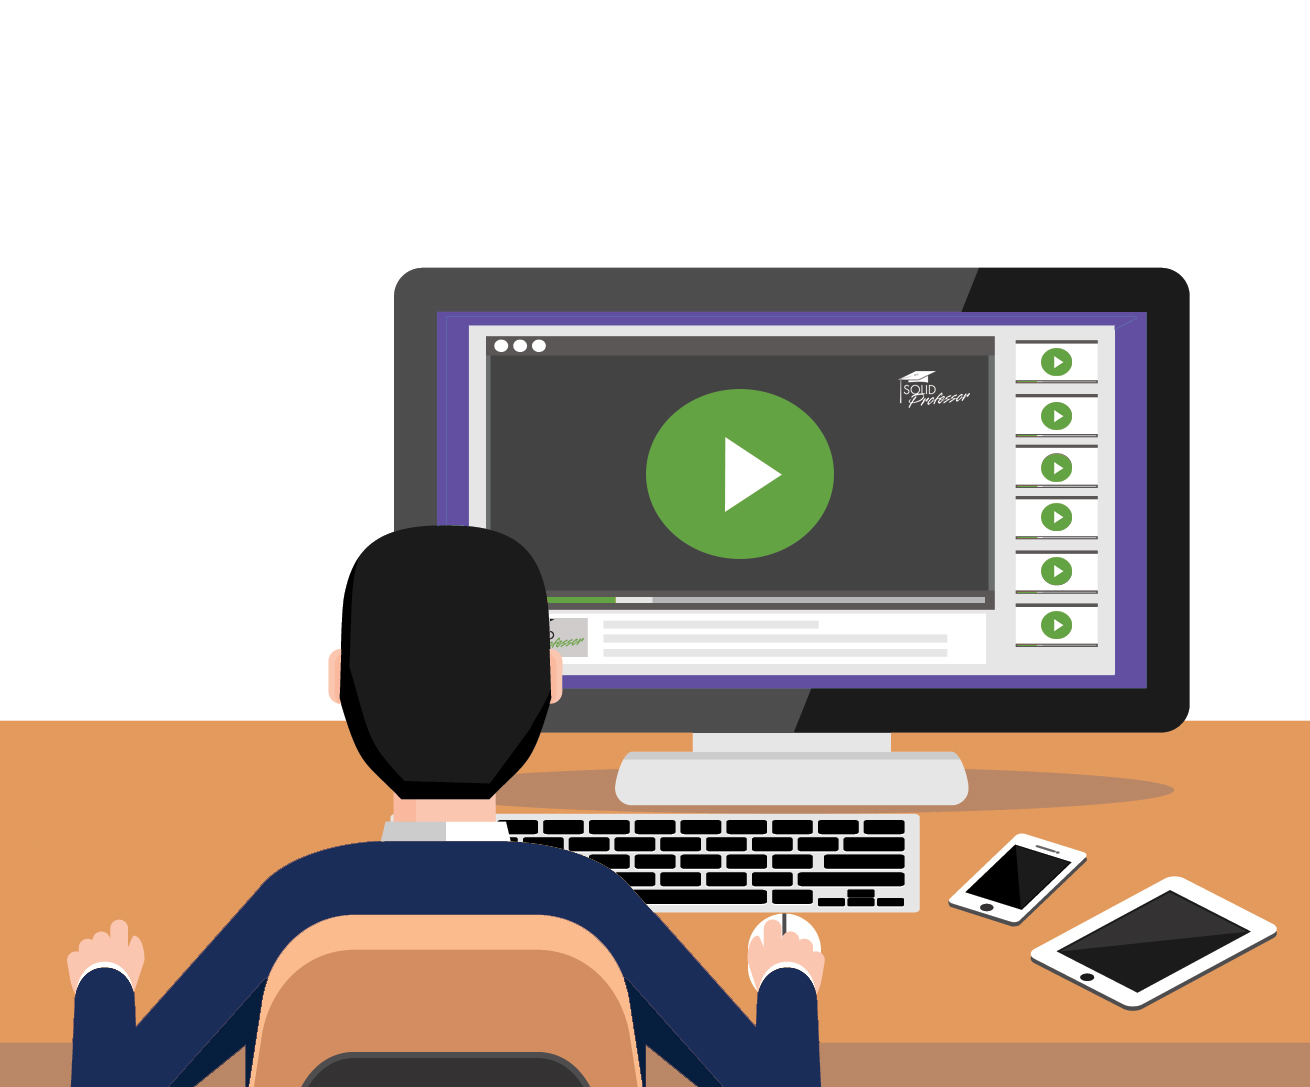 How you can integrate digital learning courses into your workday